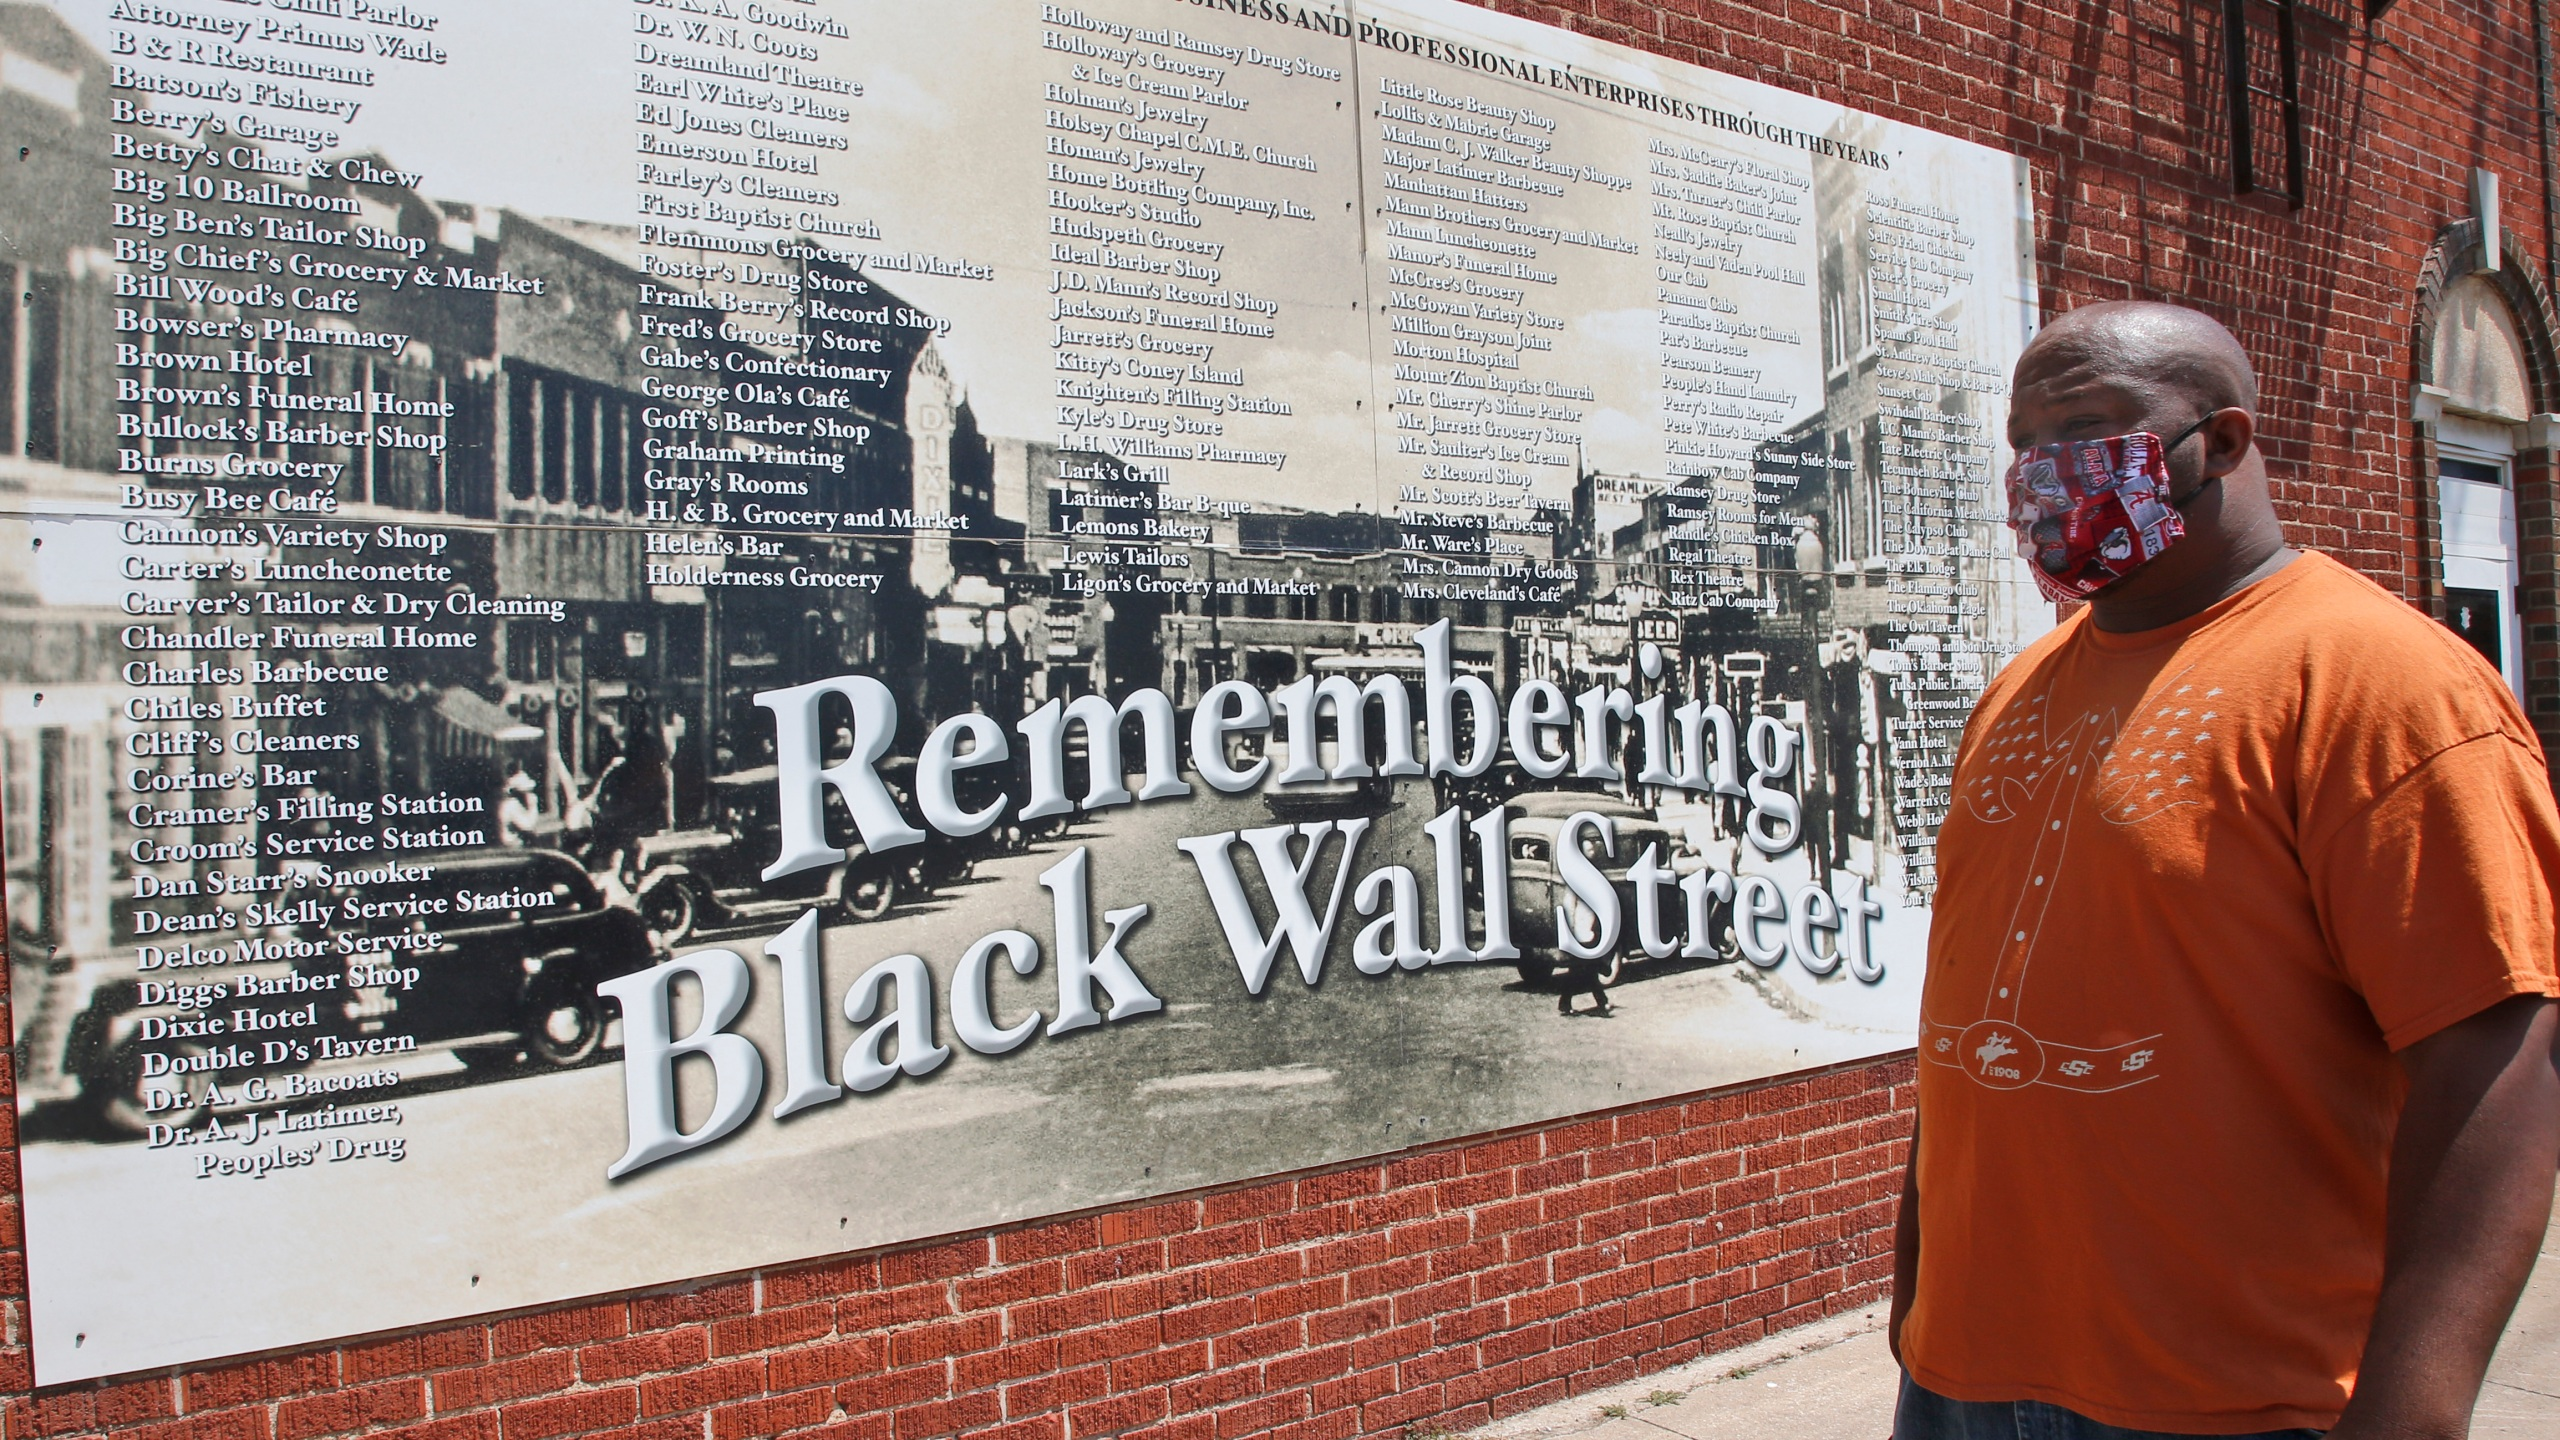 FILE - In this June 15, 2020 file photo, Freeman Culver stands in front of a mural listing the names of businesses destroyed during the 1921 Tulsa Race Massacre in Tulsa, Okla. Attorneys for victims and their descendants affected by the 1921 massacre filed a lawsuit in state court on Tuesday, Sept. 1, 2020, against the City of Tulsa and other defendants seeking reparations for the destruction of the city's once thriving Black district. (AP Photo/Sue Ogrocki File)